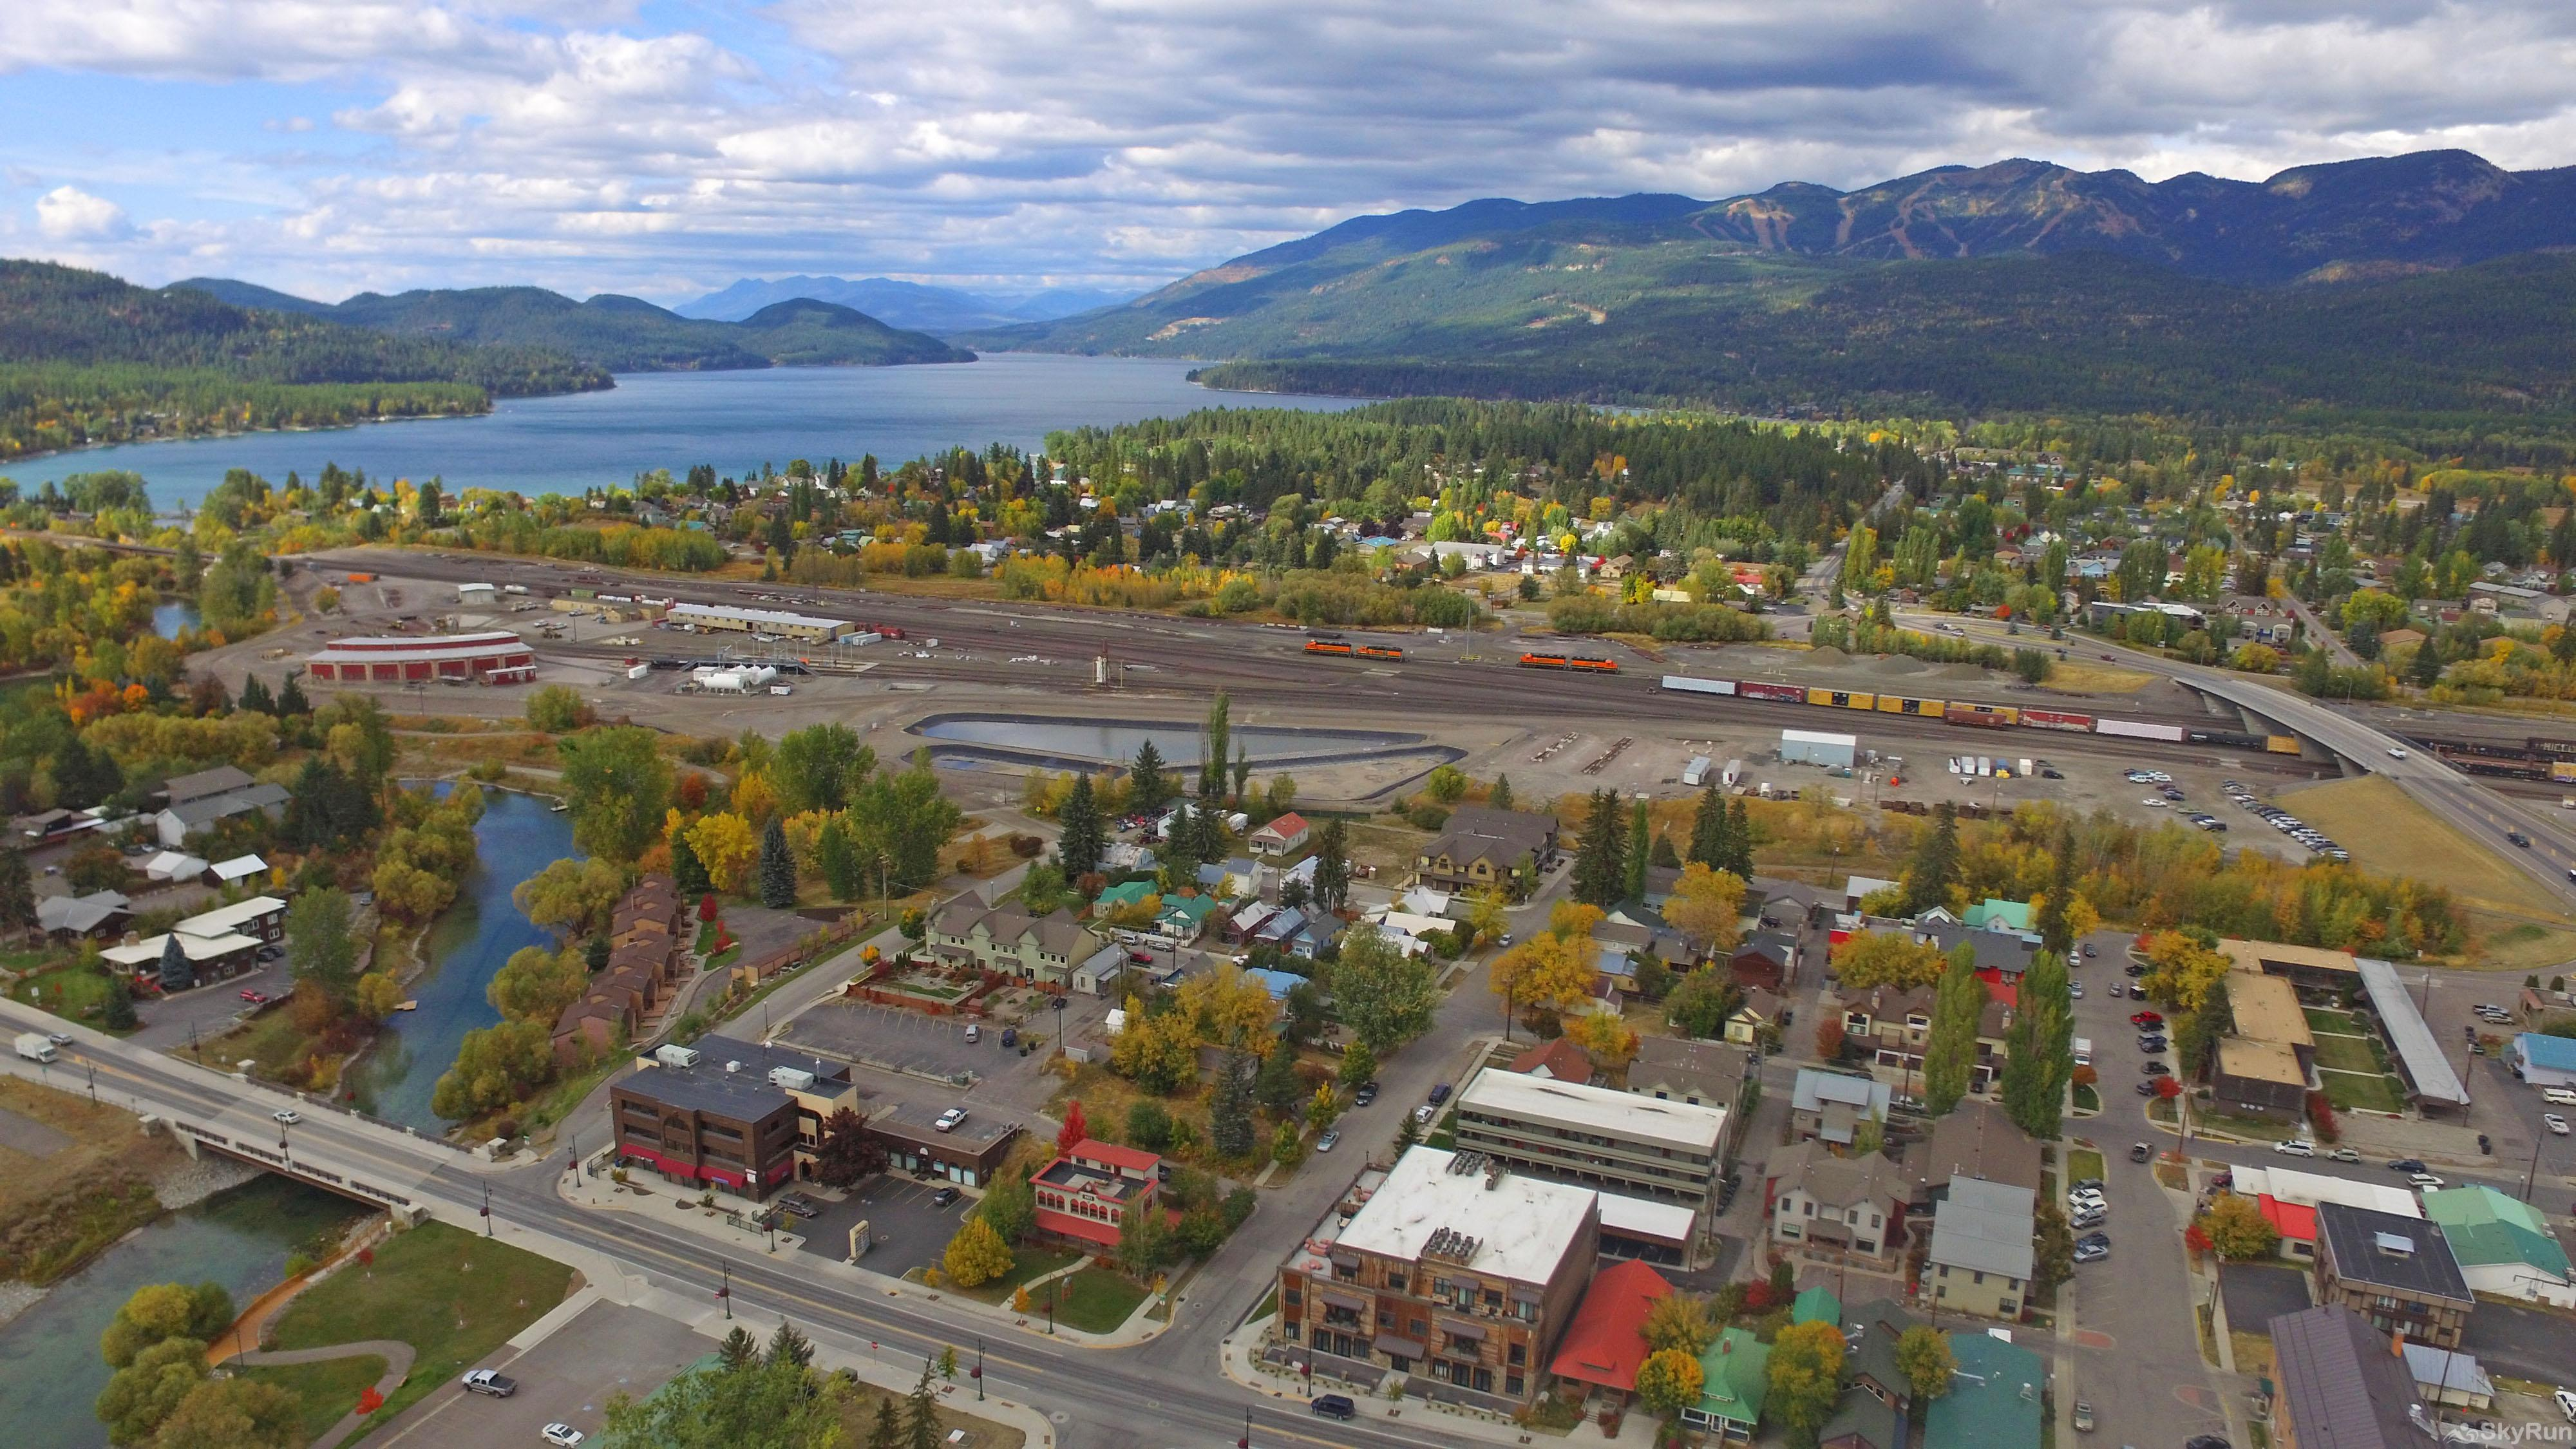 Whispering Pines Chalet Downtown Whitefish with the lake and ski resort in the background